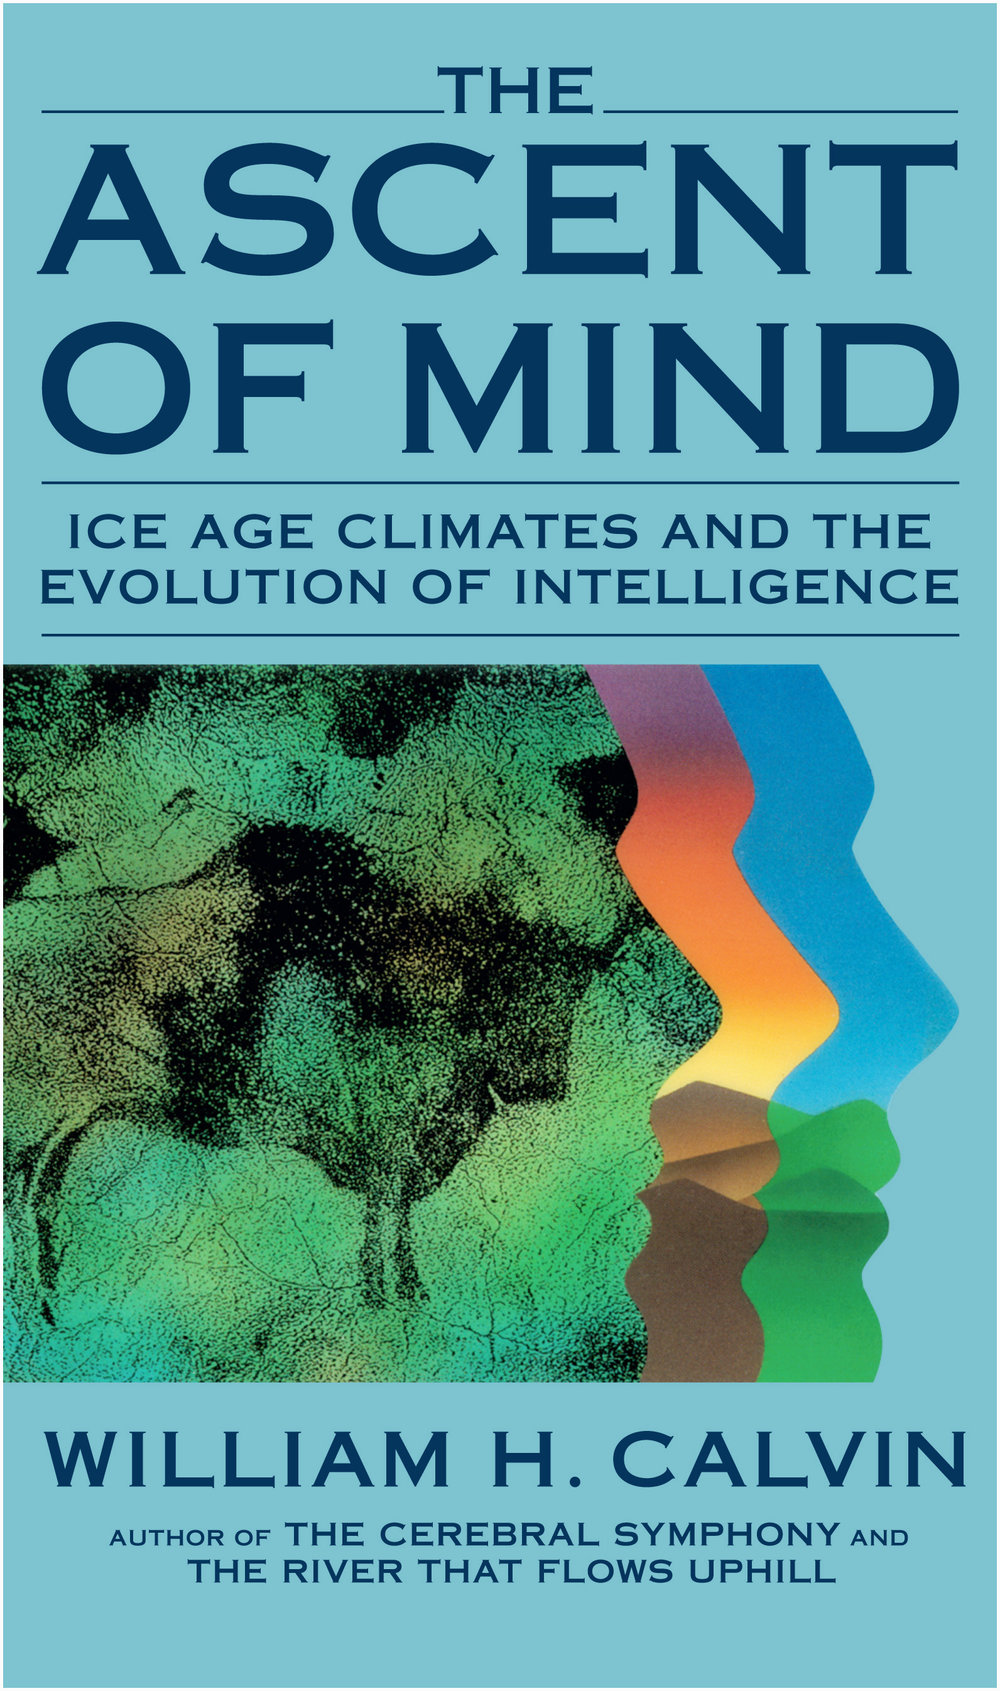 The Ascent of Mind. Ice Age Climates and the Evolution of Intelligence.